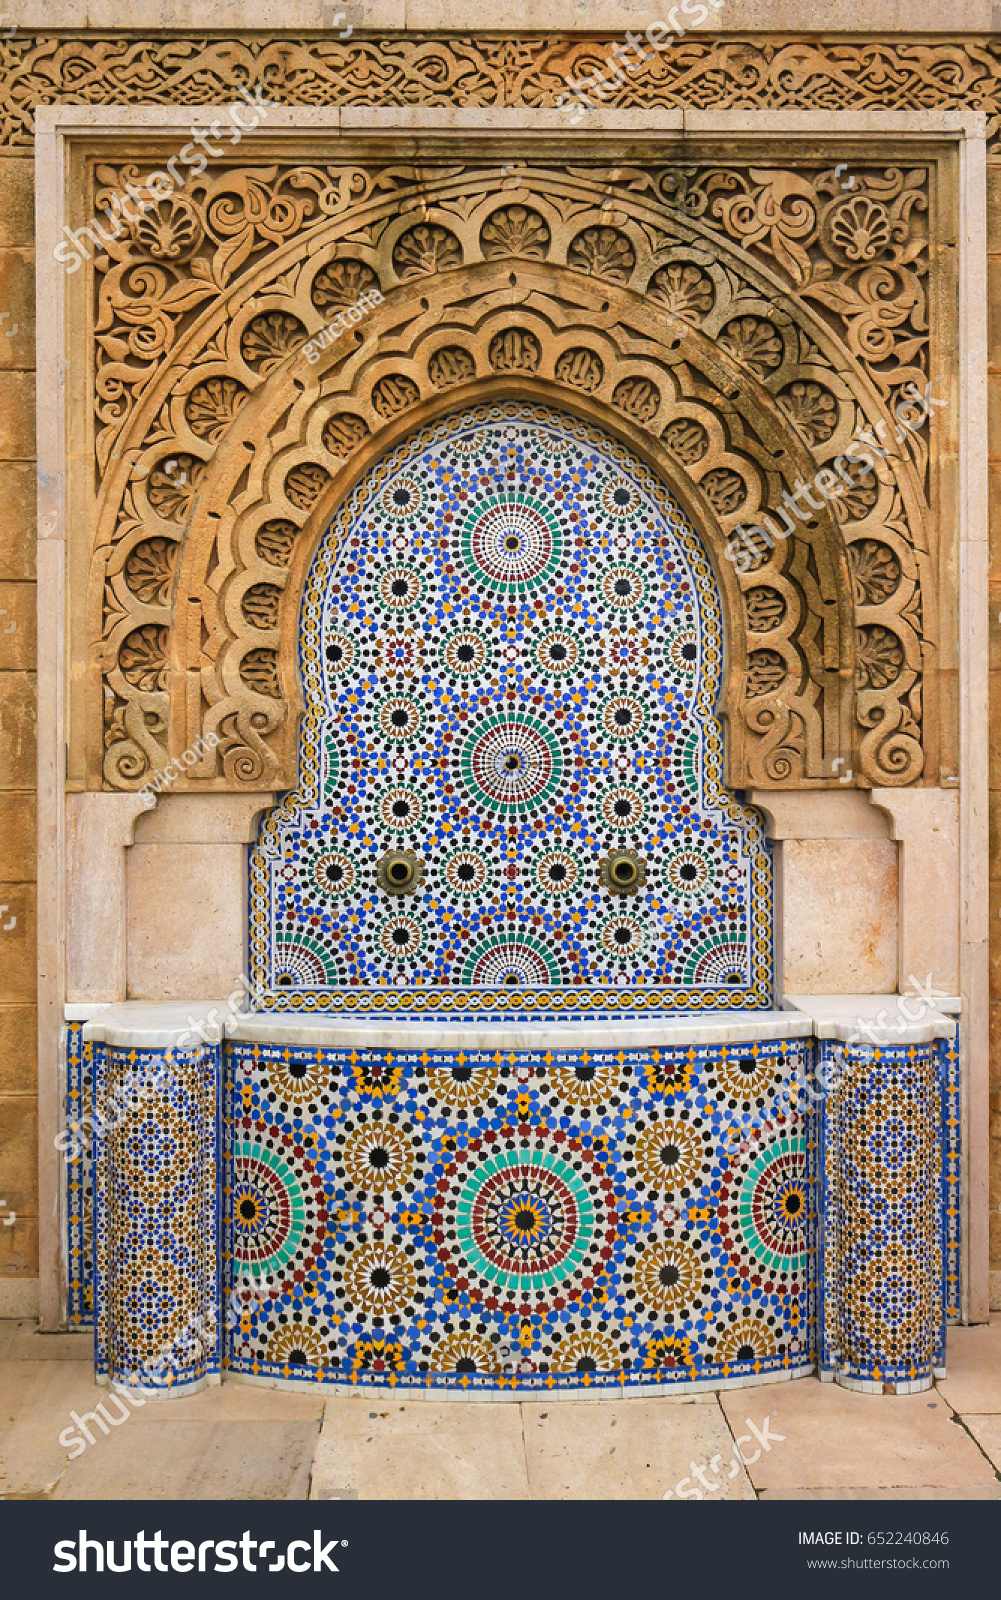 Beautiful decorative mosaic ceramic tile fountain stock photo beautiful decorative mosaic ceramic tile fountain with ornate arch in morocco africa dailygadgetfo Images